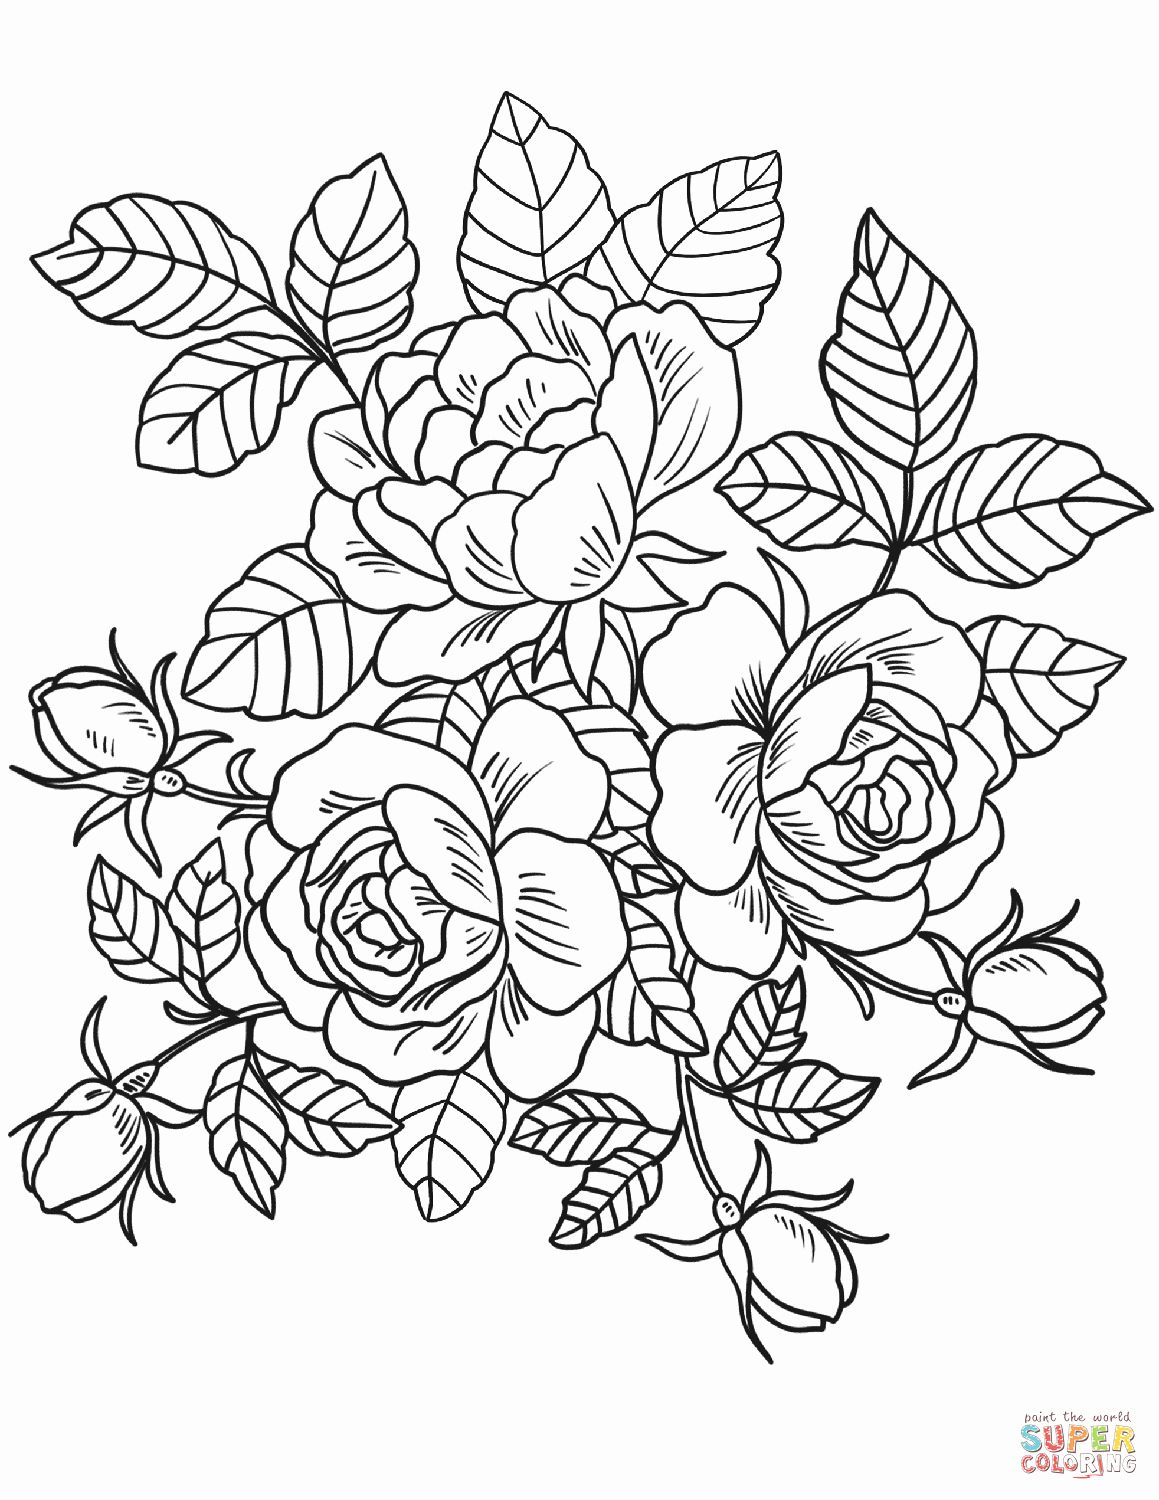 Flowers Valentine Coloring Pages Lovely Roses Flowers Coloring Page Detailed Coloring Pages Rose Coloring Pages Shape Coloring Pages